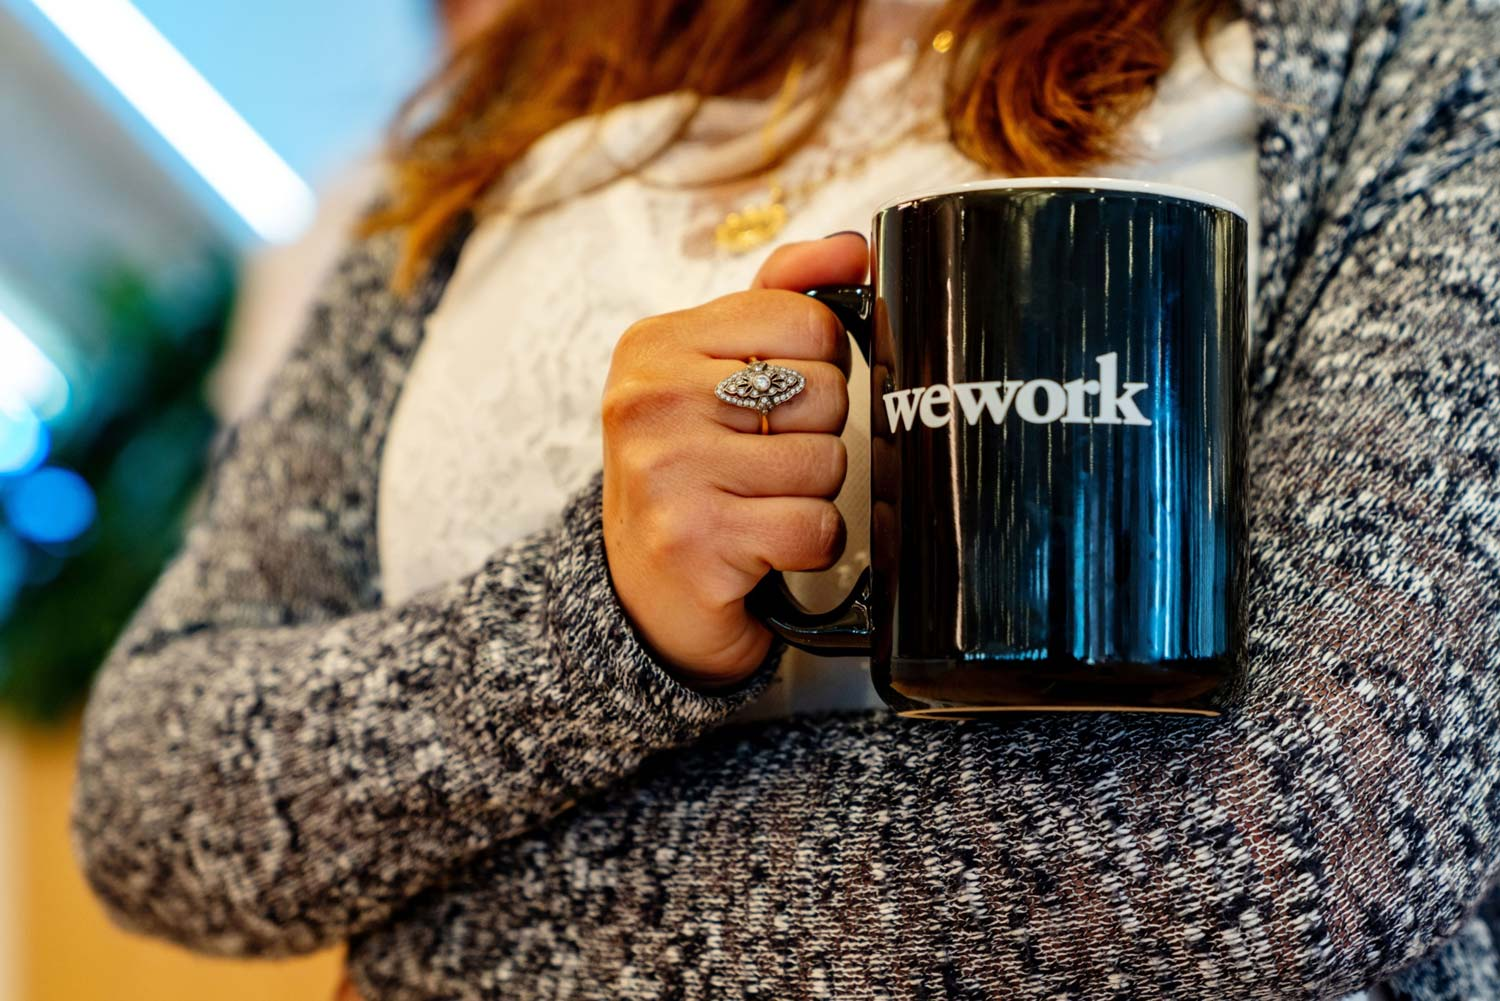 Why agency creatives are loving Big Pharma accounts, and WeWork's new appeal: Tuesday Wake-Up Call